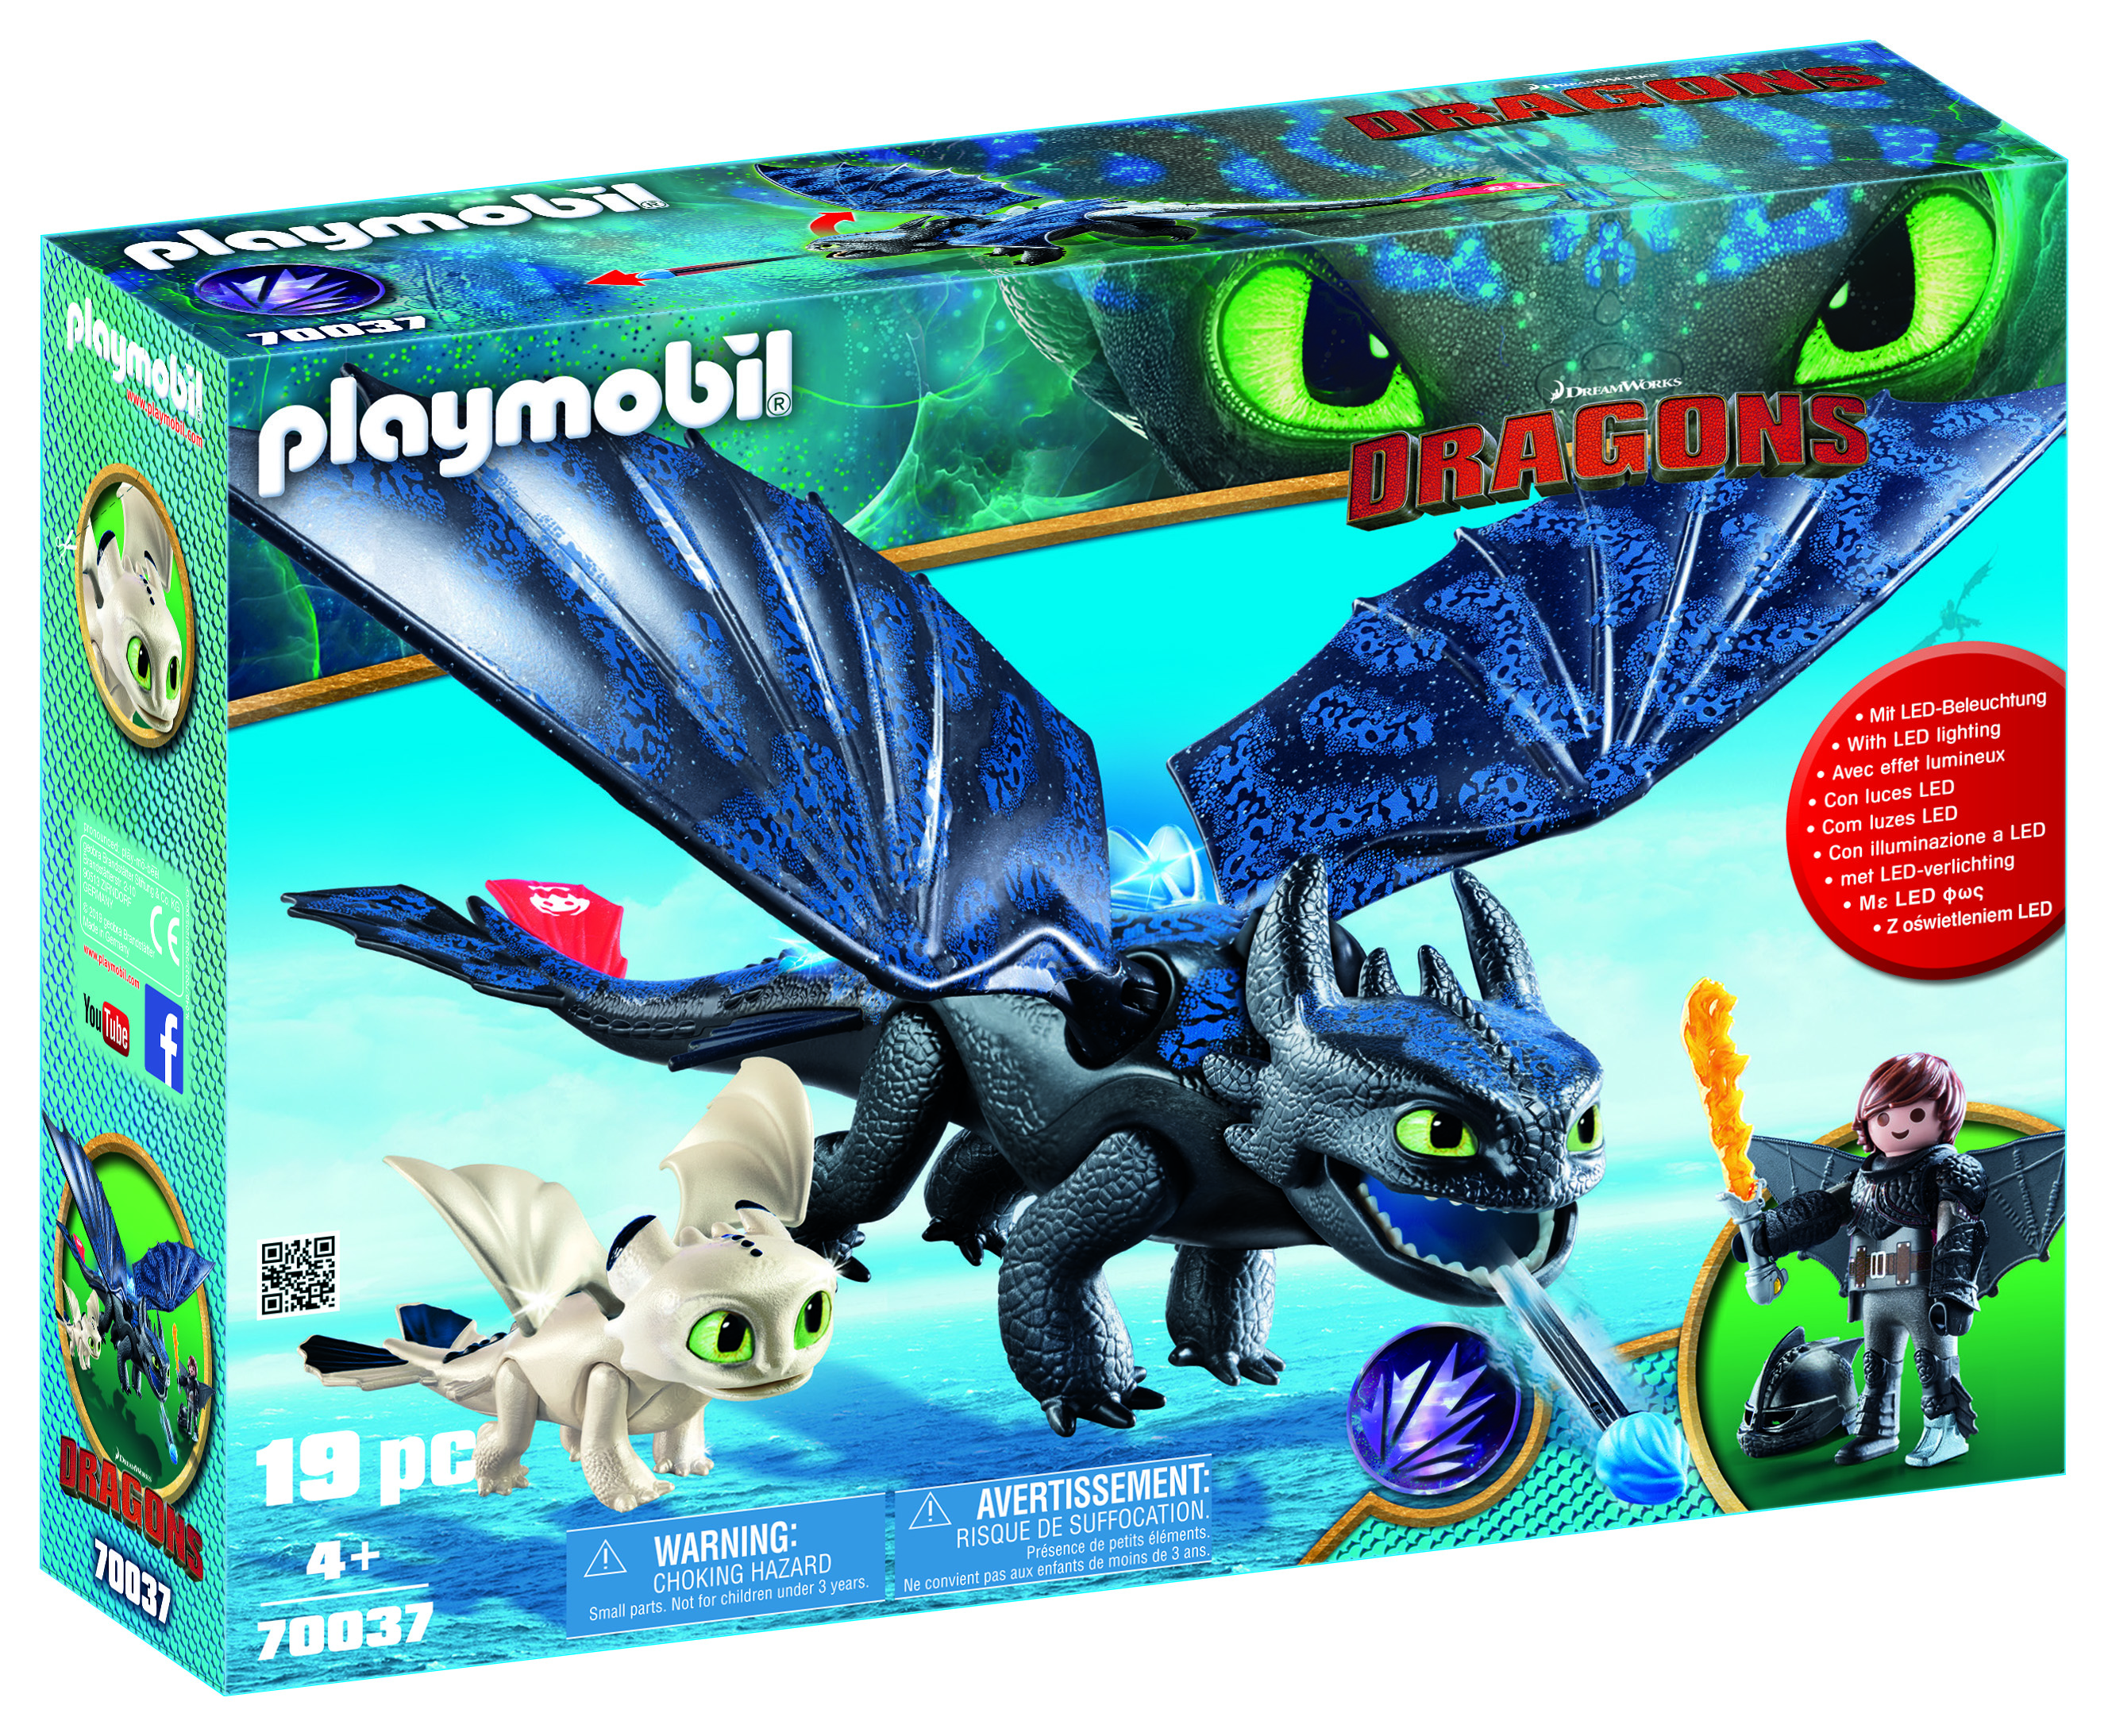 PLAYMOBIL DreamWorks Dragons Hiccup & Toothless w/ Baby Dragon!